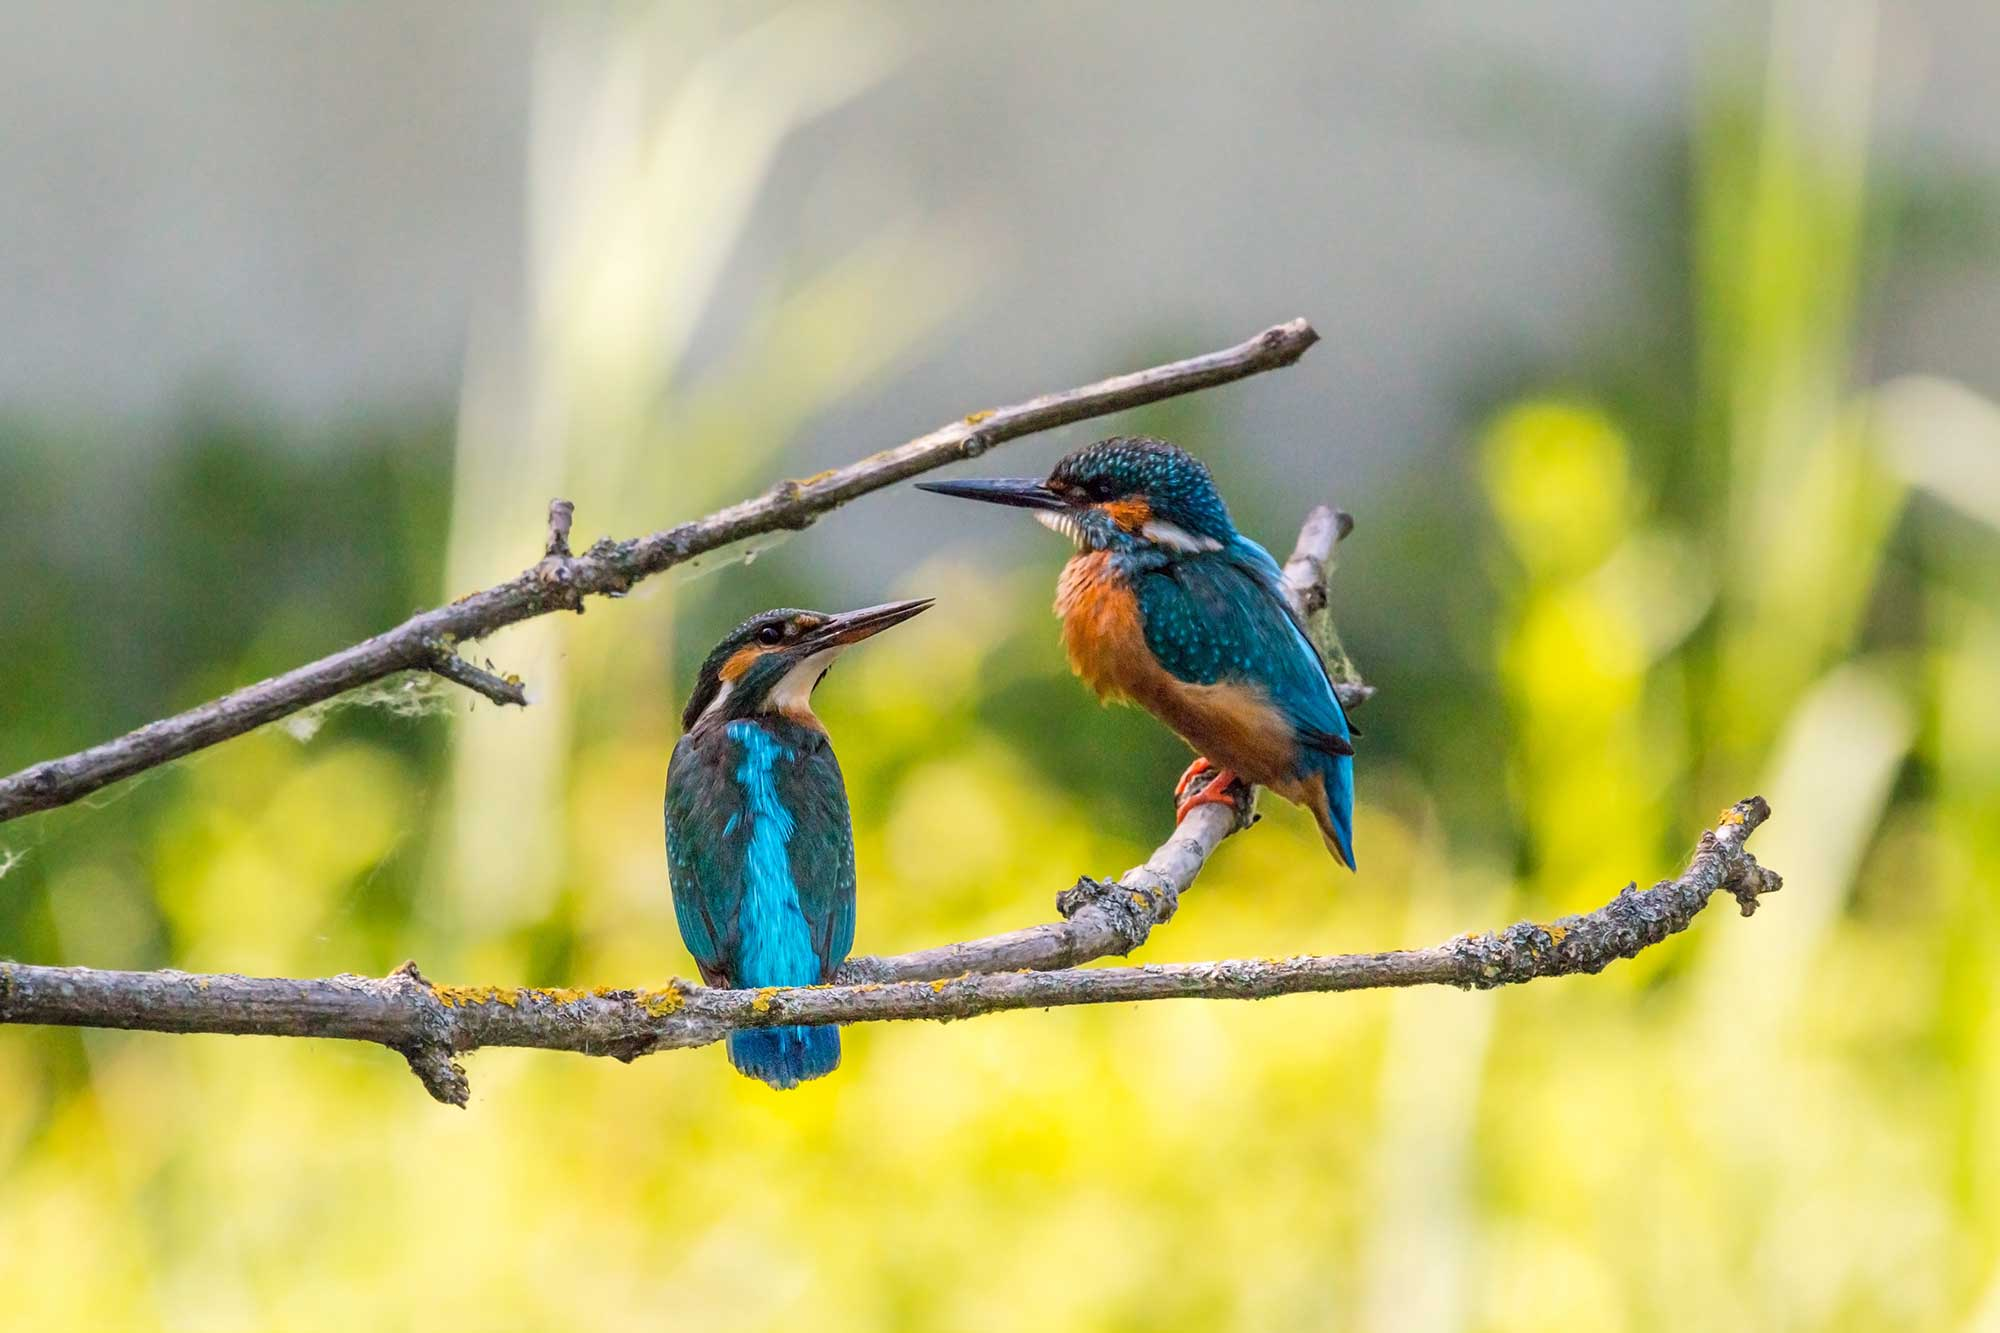 Two kingfisher birds on a tree branch